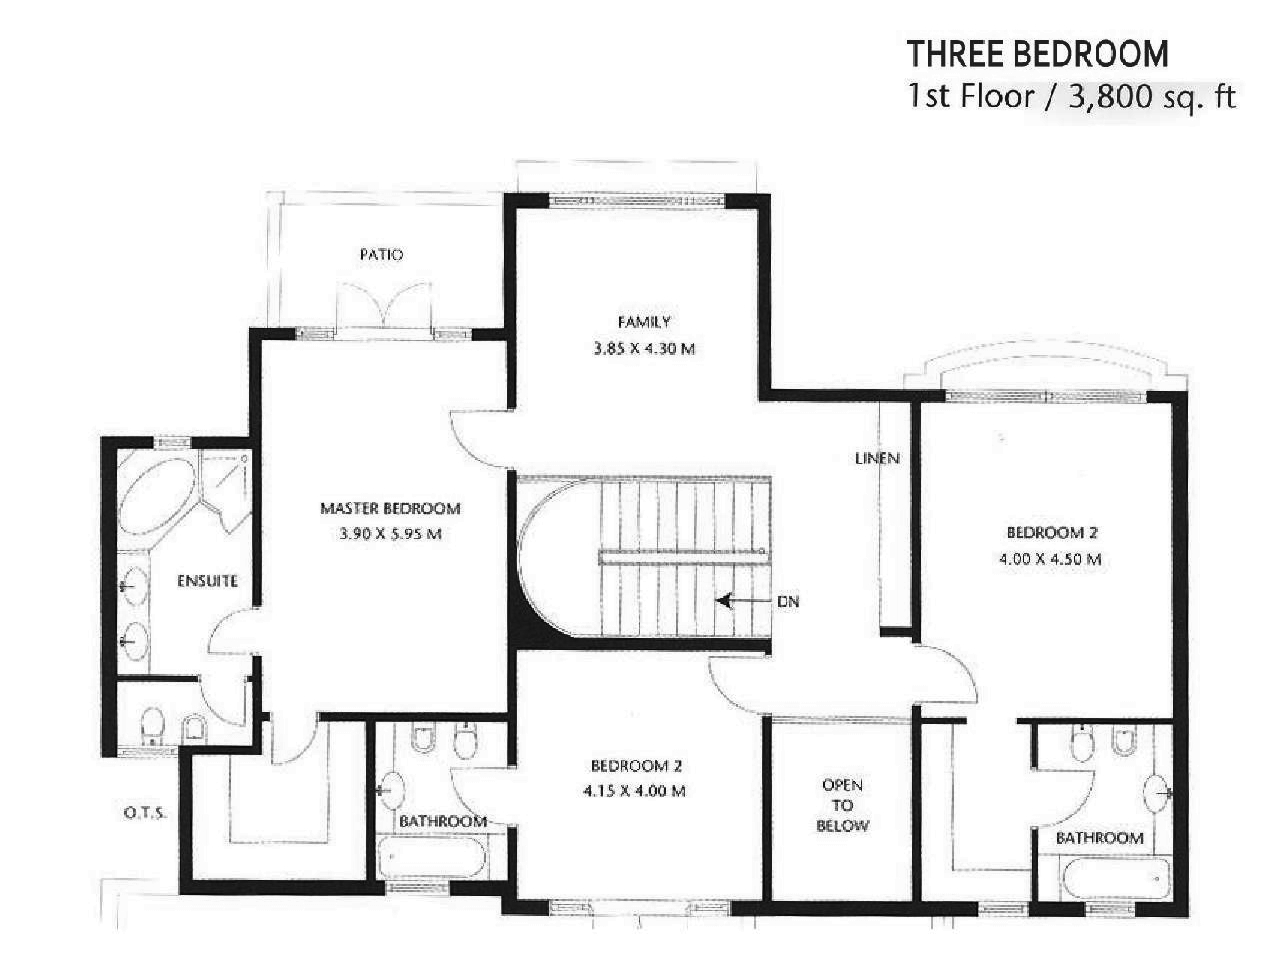 17 amazing 3 bedroom townhouse plans home plans for 3 bedroom townhouse plans